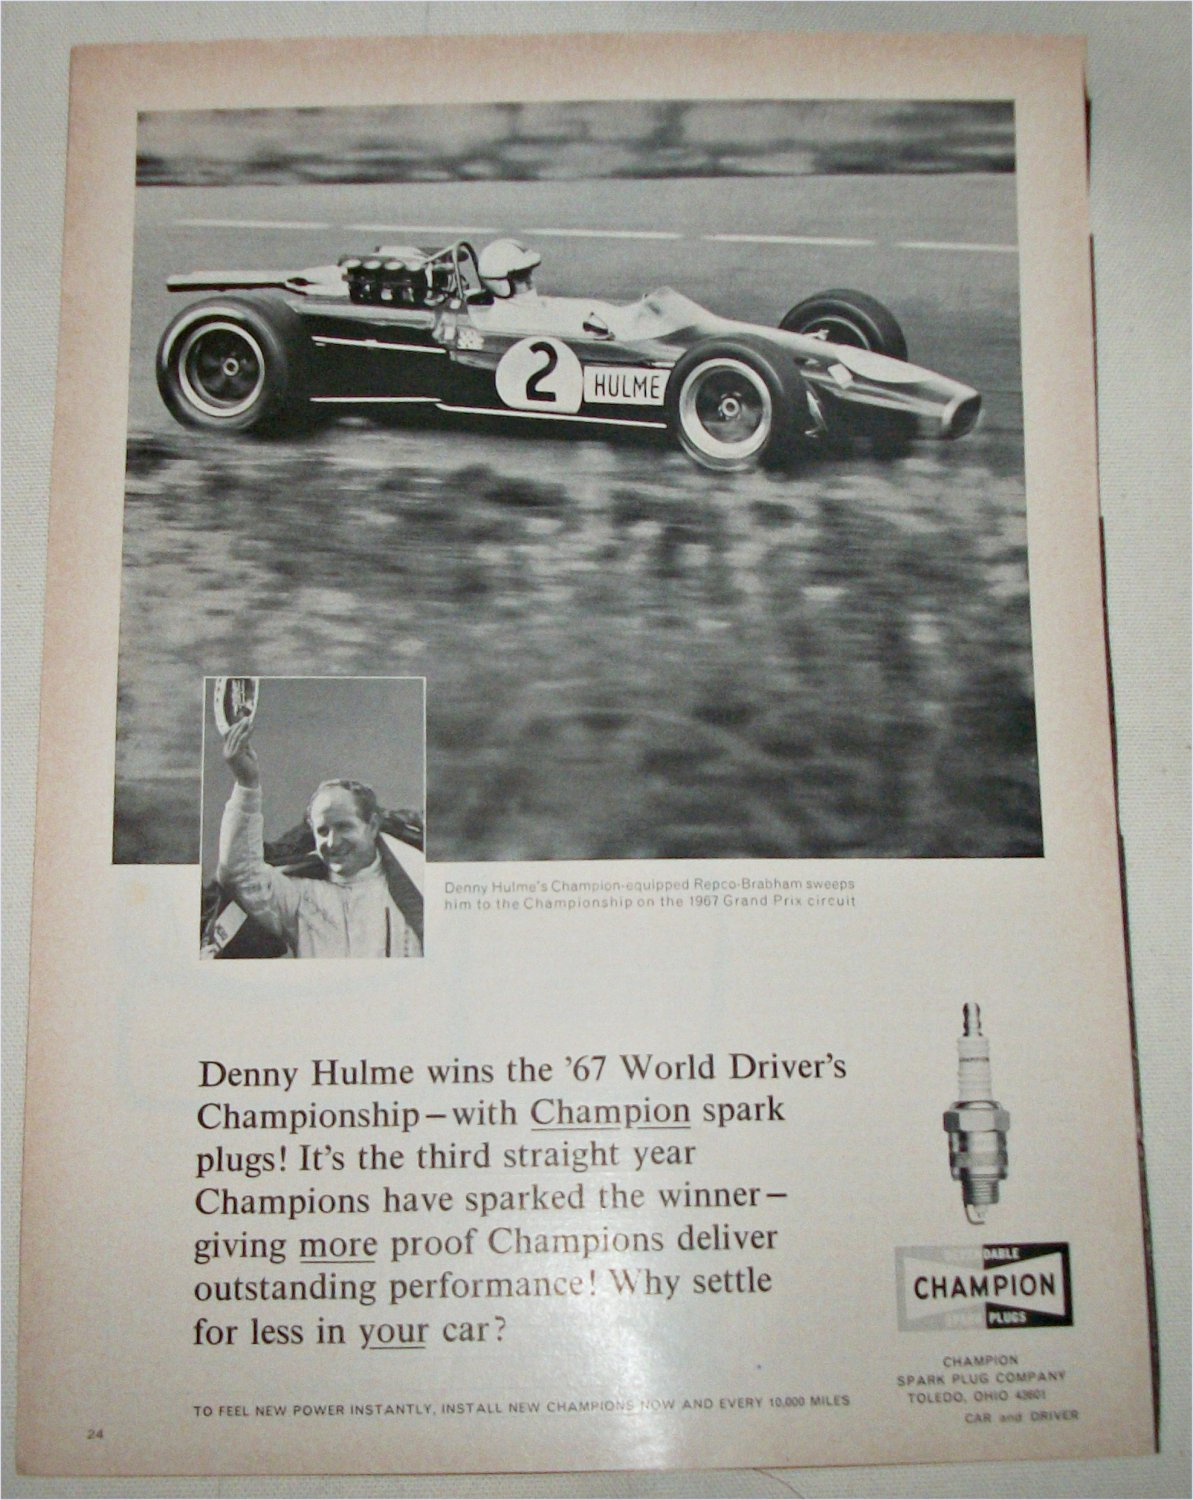 1968 Champion Spark Plugs ad featuring Denny Hulme